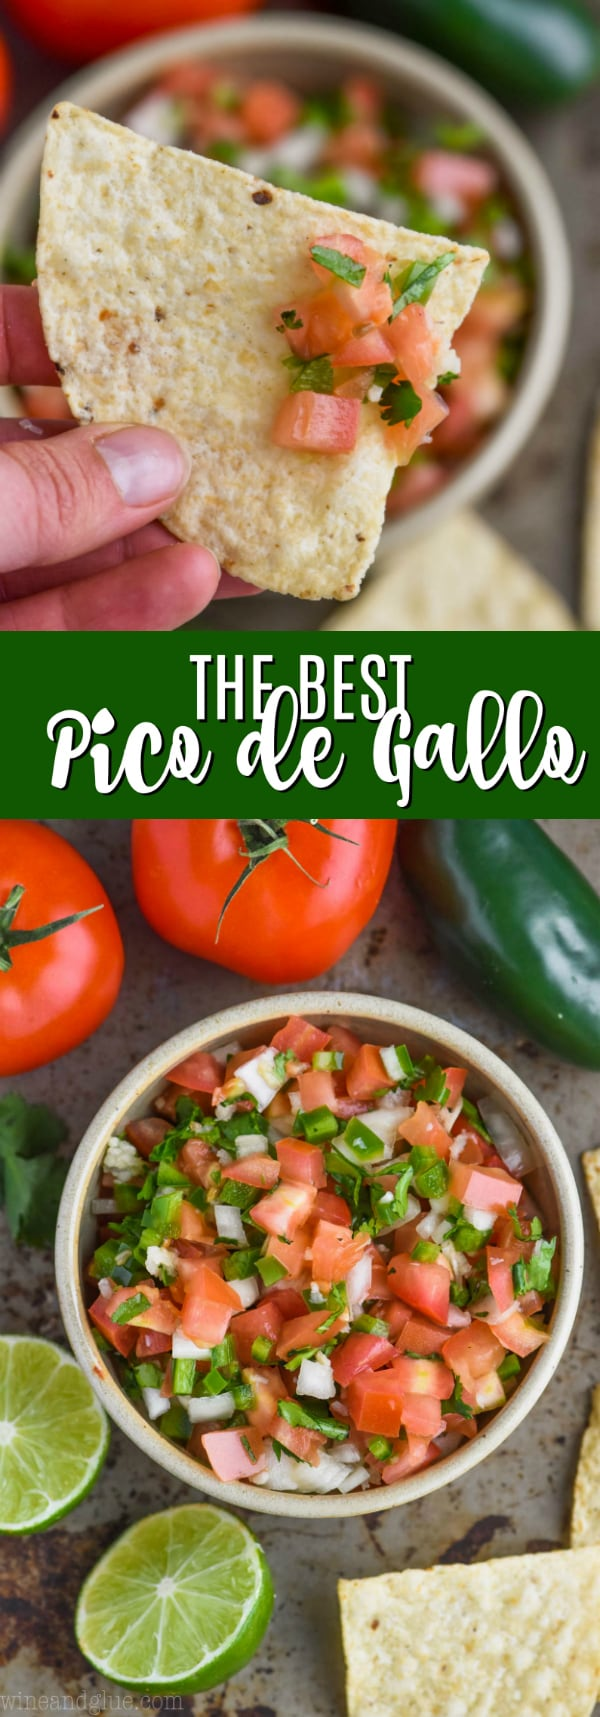 The Best Pico de Gallo Recipe